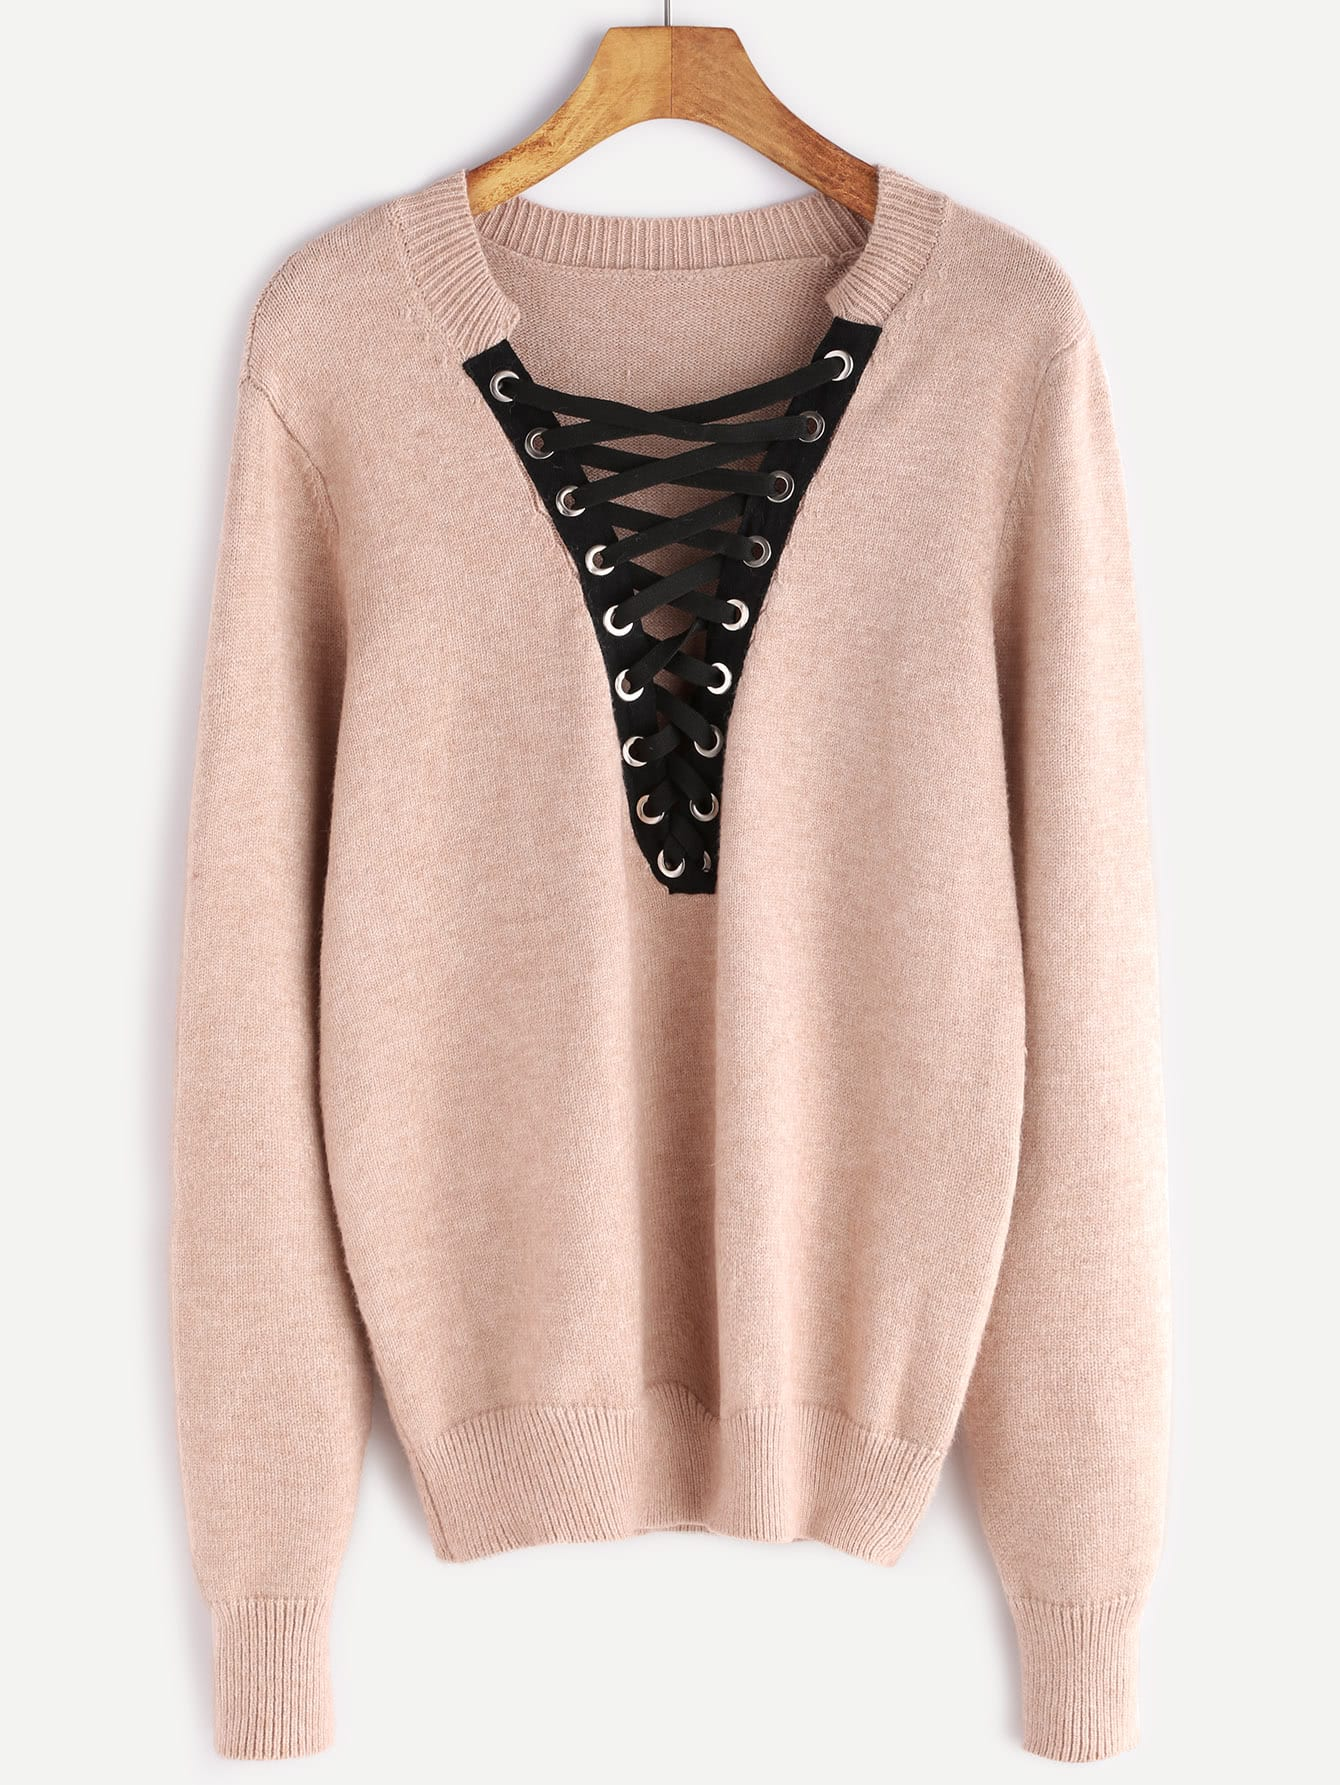 Pink Eyelet Lace Up Plunge Neck SweaterPink Eyelet Lace Up Plunge Neck Sweater<br><br>color: Pink<br>size: one-size